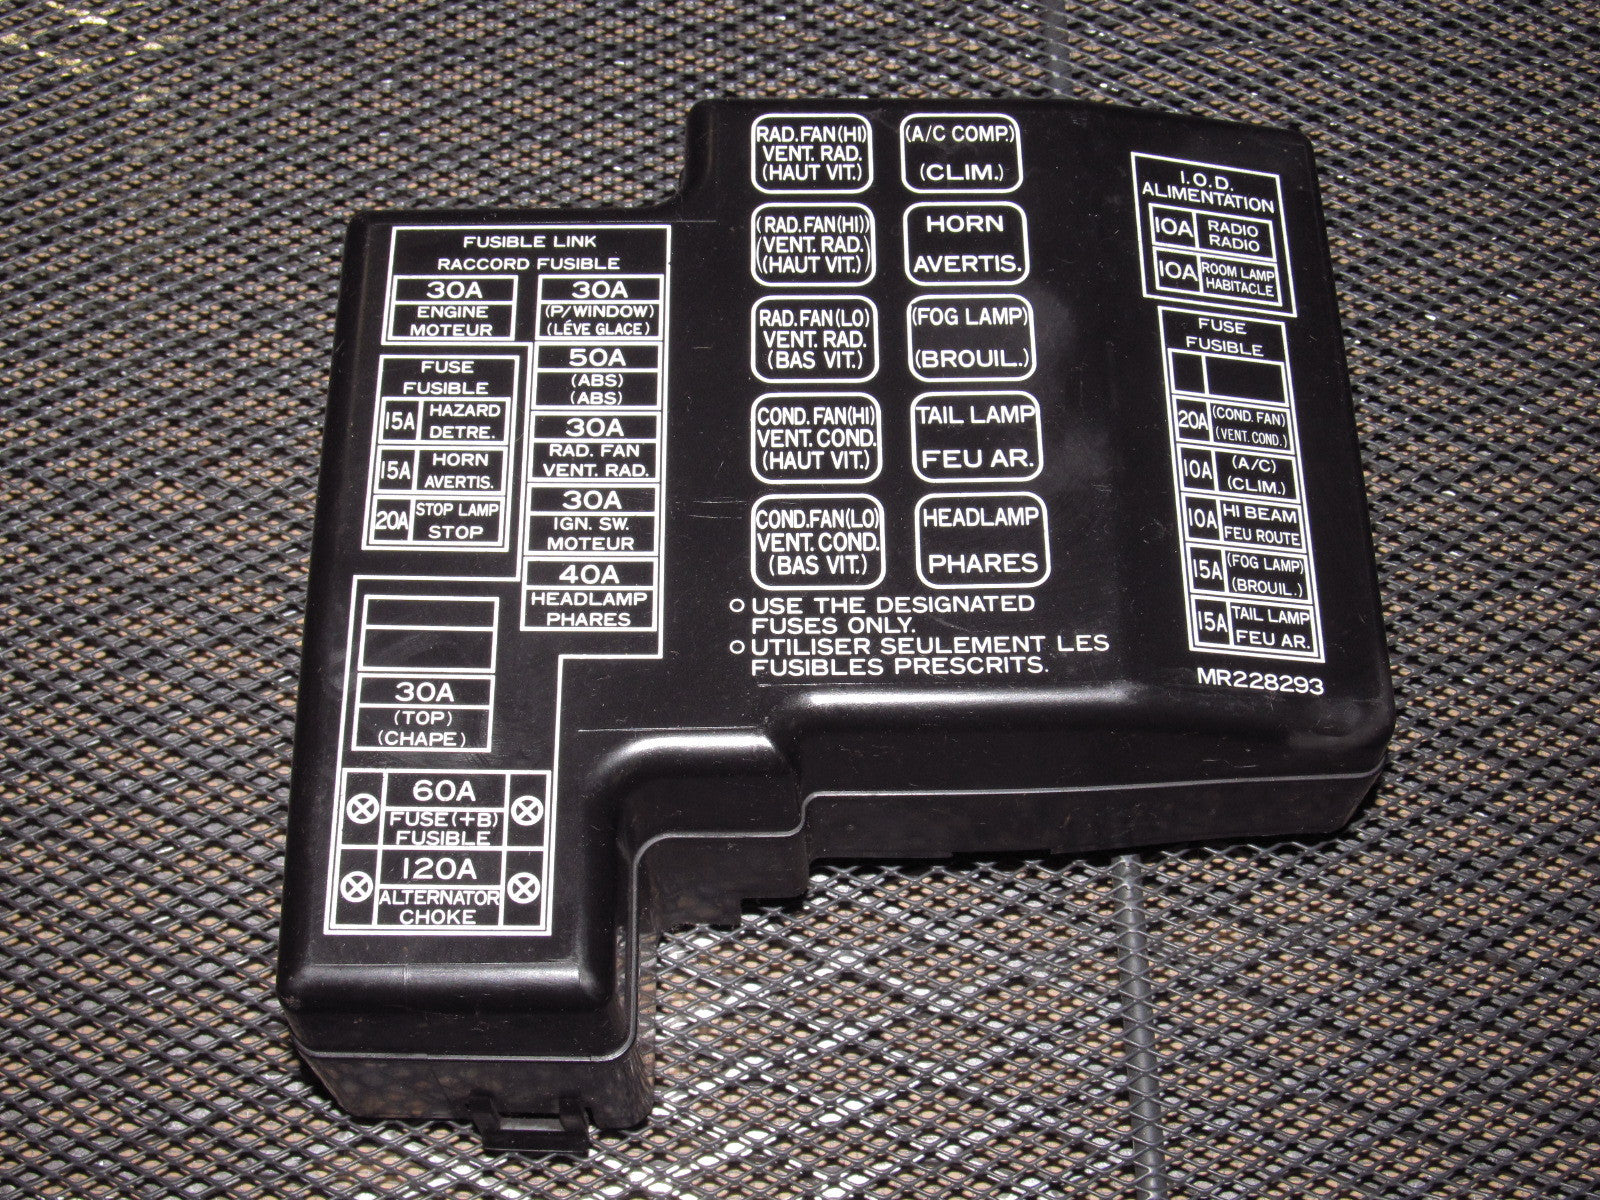 97 98 99 mitsubishi eclipse oem engine fuse box cover. Black Bedroom Furniture Sets. Home Design Ideas